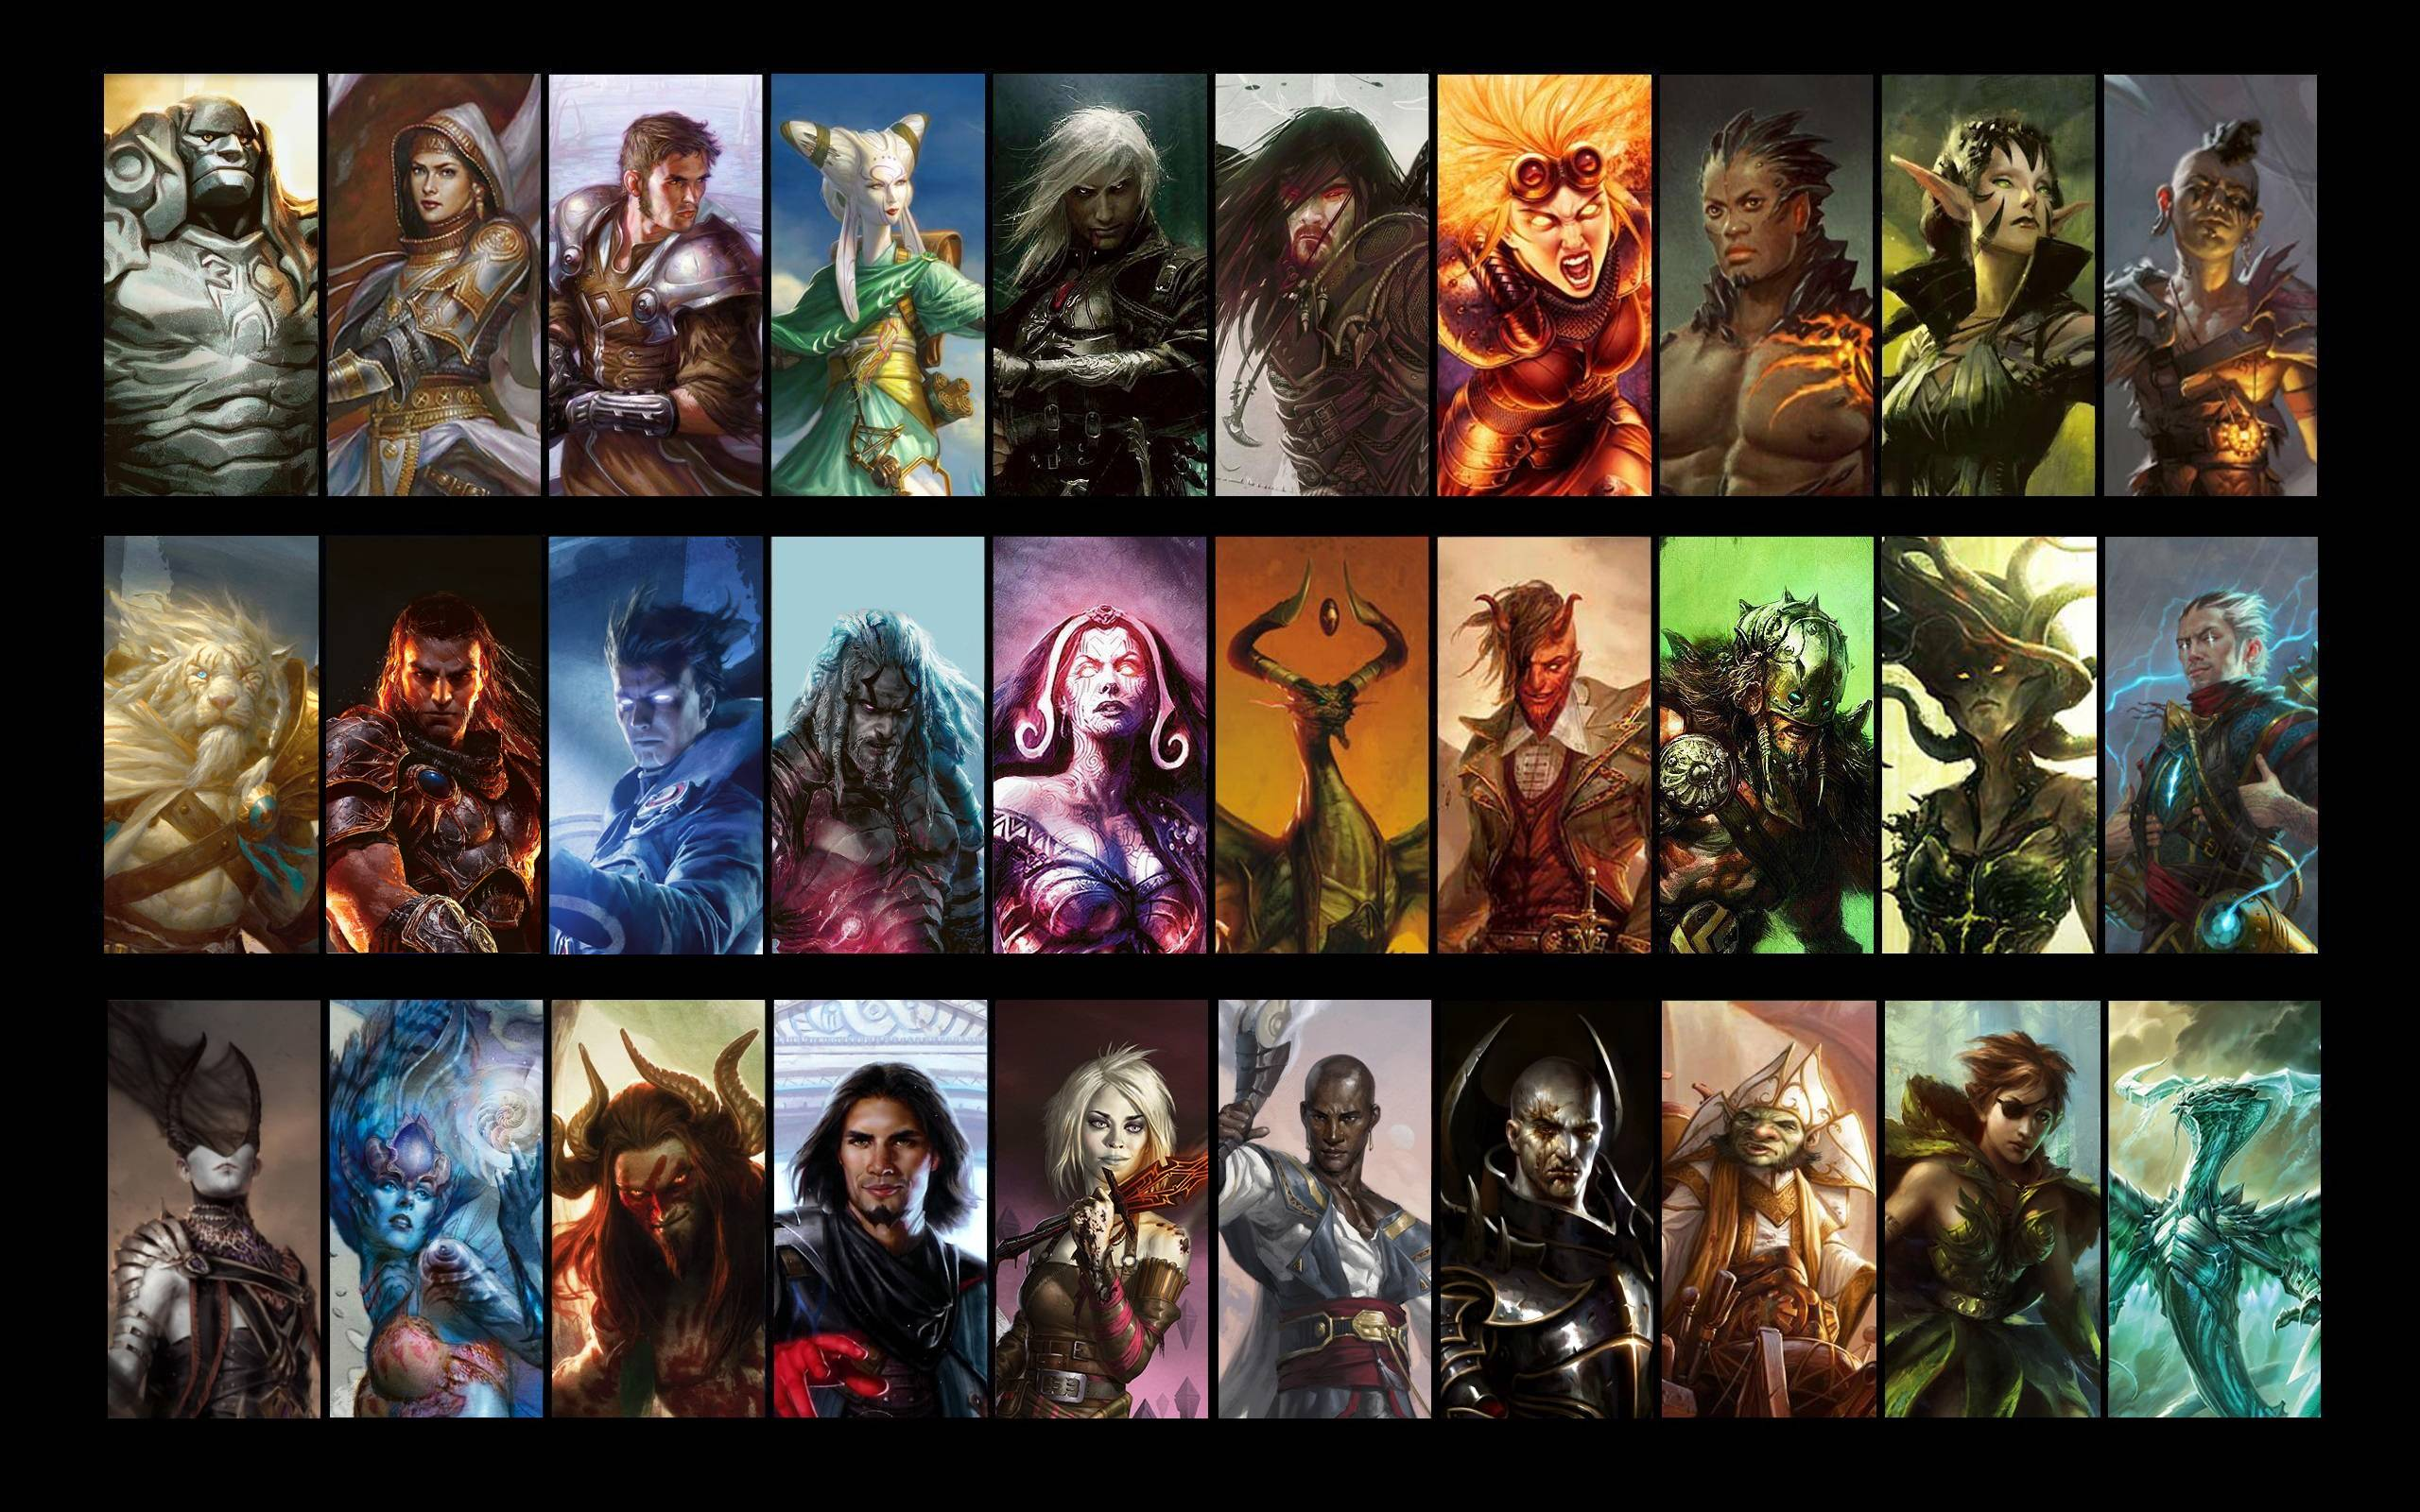 Free Download Mtg Planeswalker Wallpapers Top Mtg Planeswalker